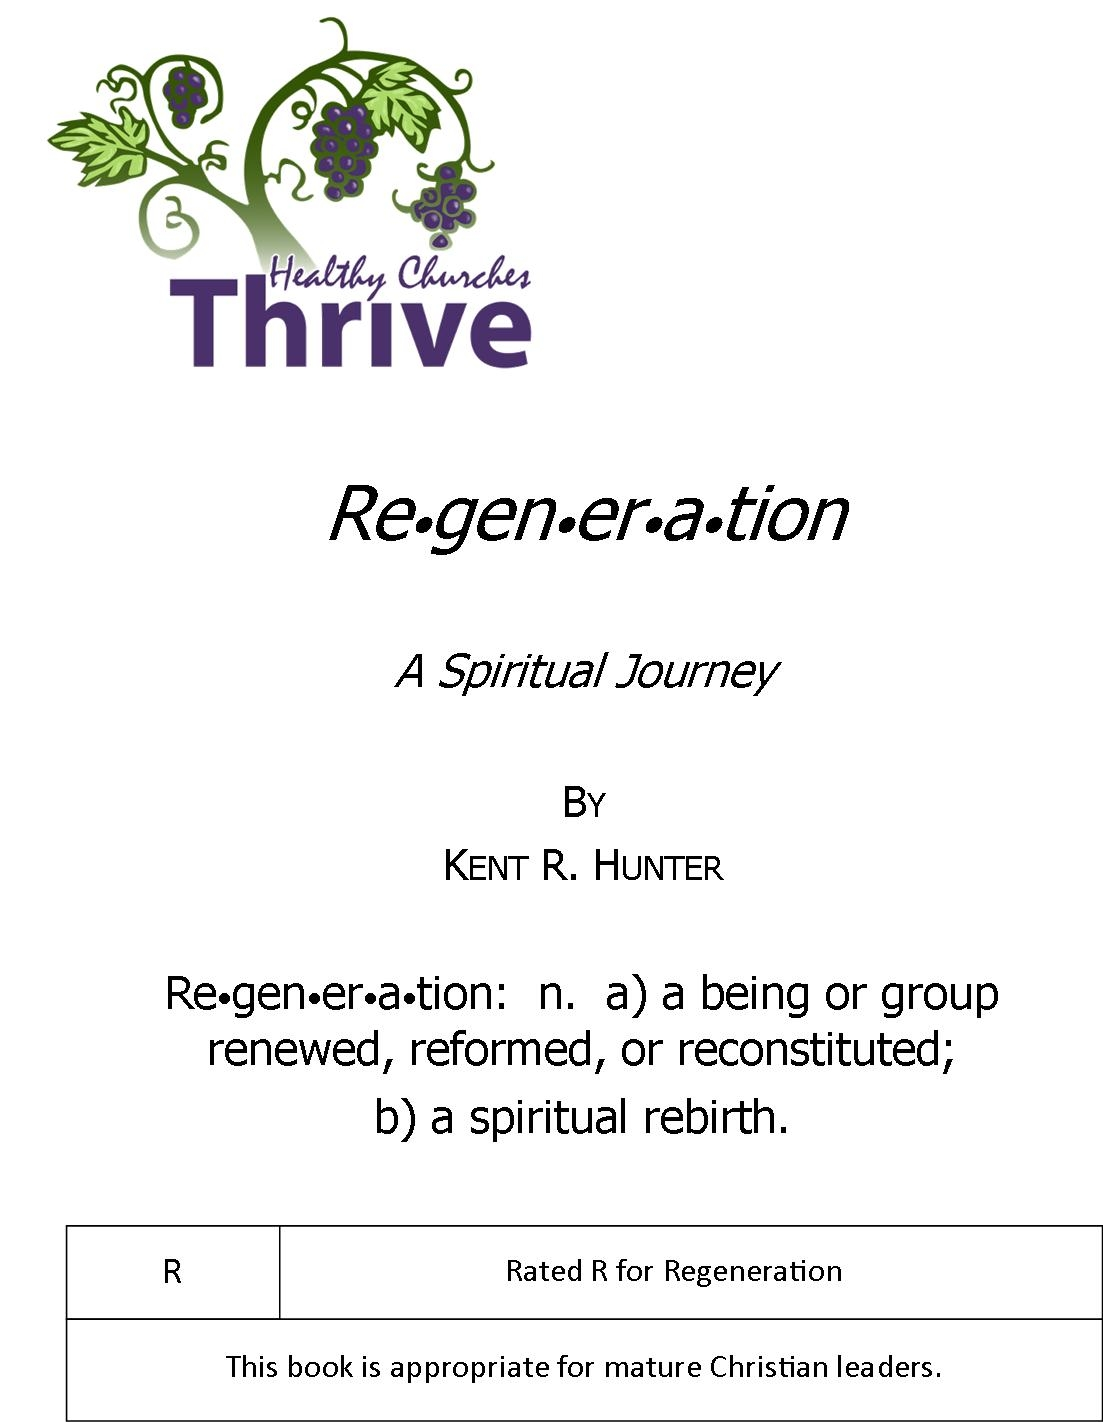 Rated R for Regeneration….